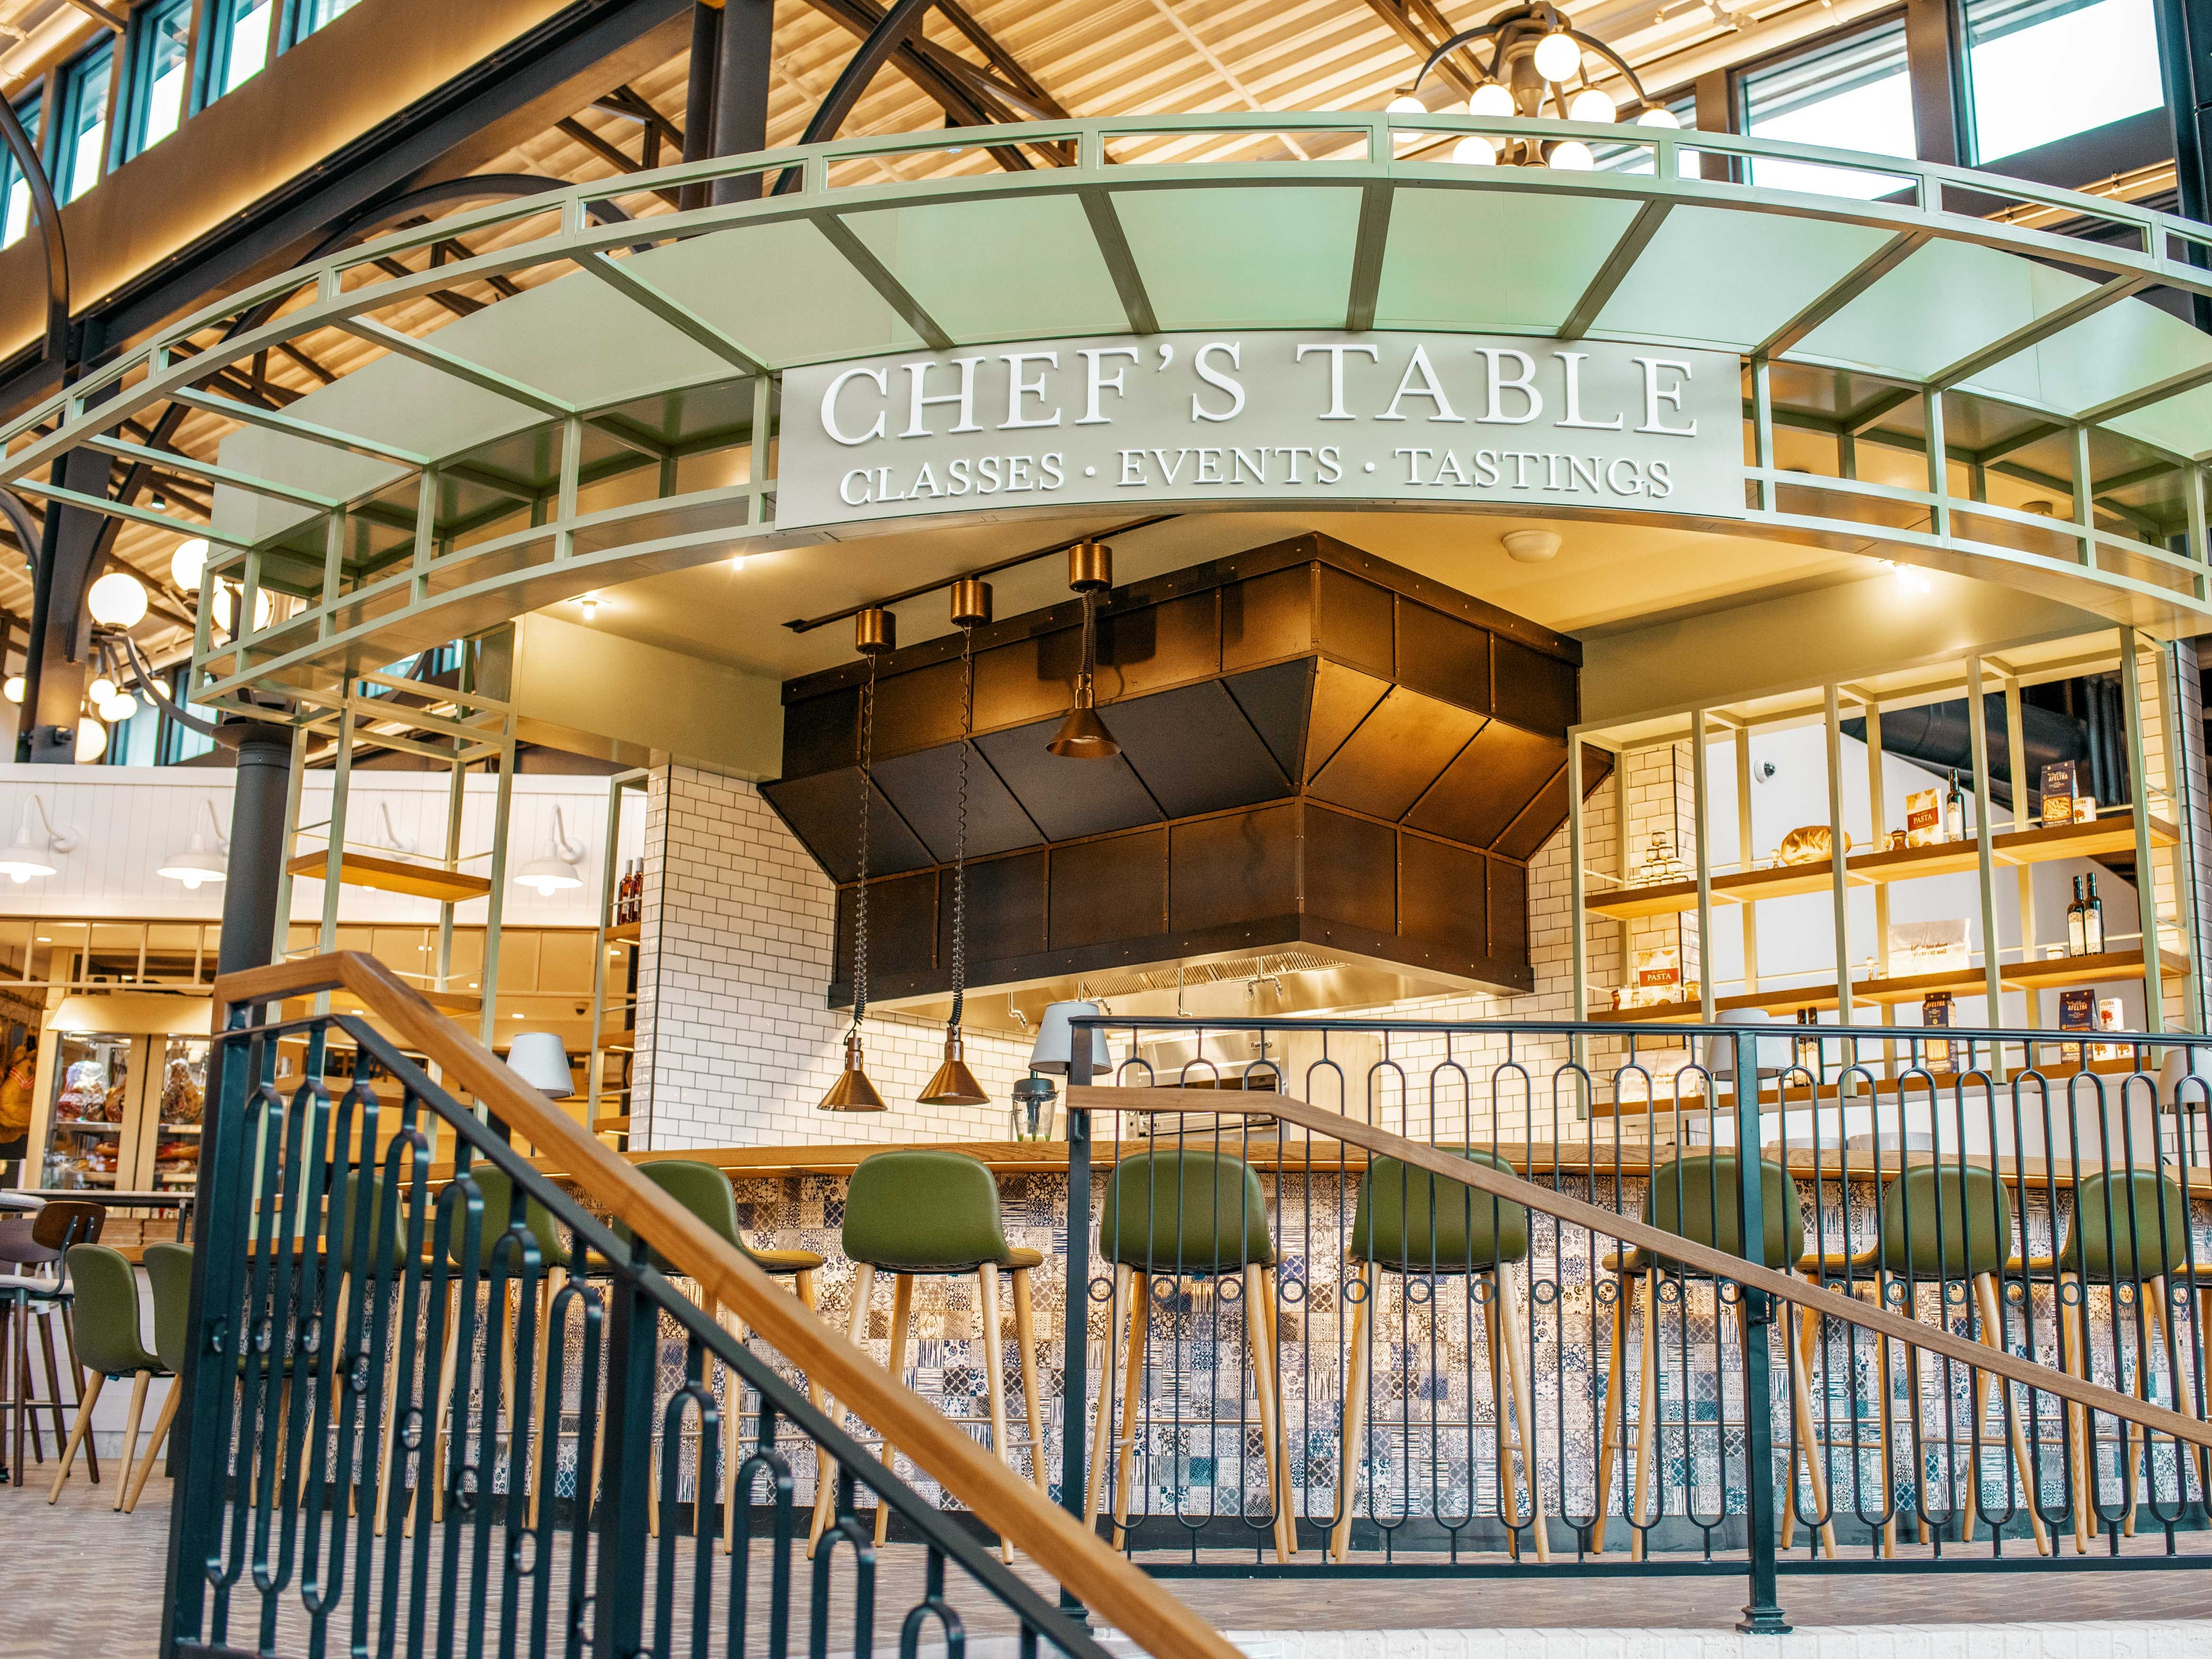 EATALY LAS VEGAS in the Park MGM. Classes, tastings and other events take place at the Chef's Table.